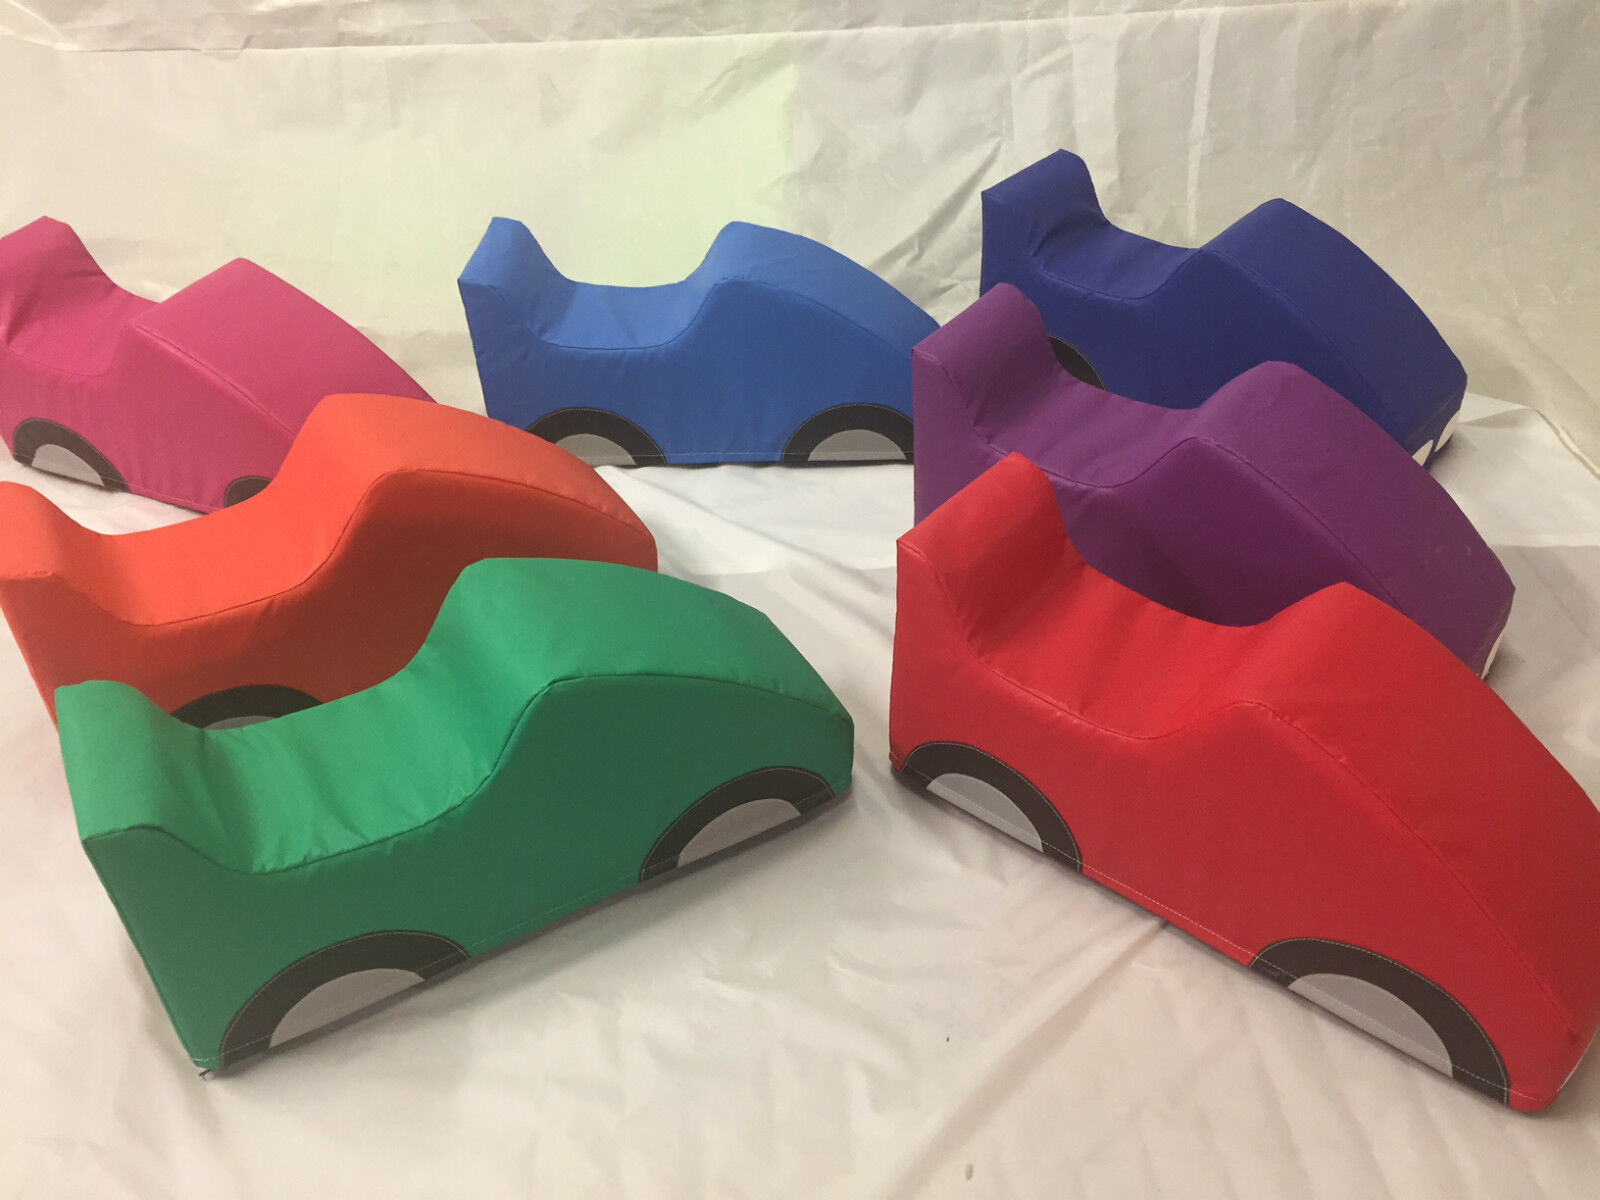 3 x Soft Play Sit on Car  Approx 30 x 15 x 8 inch Mixed Colours